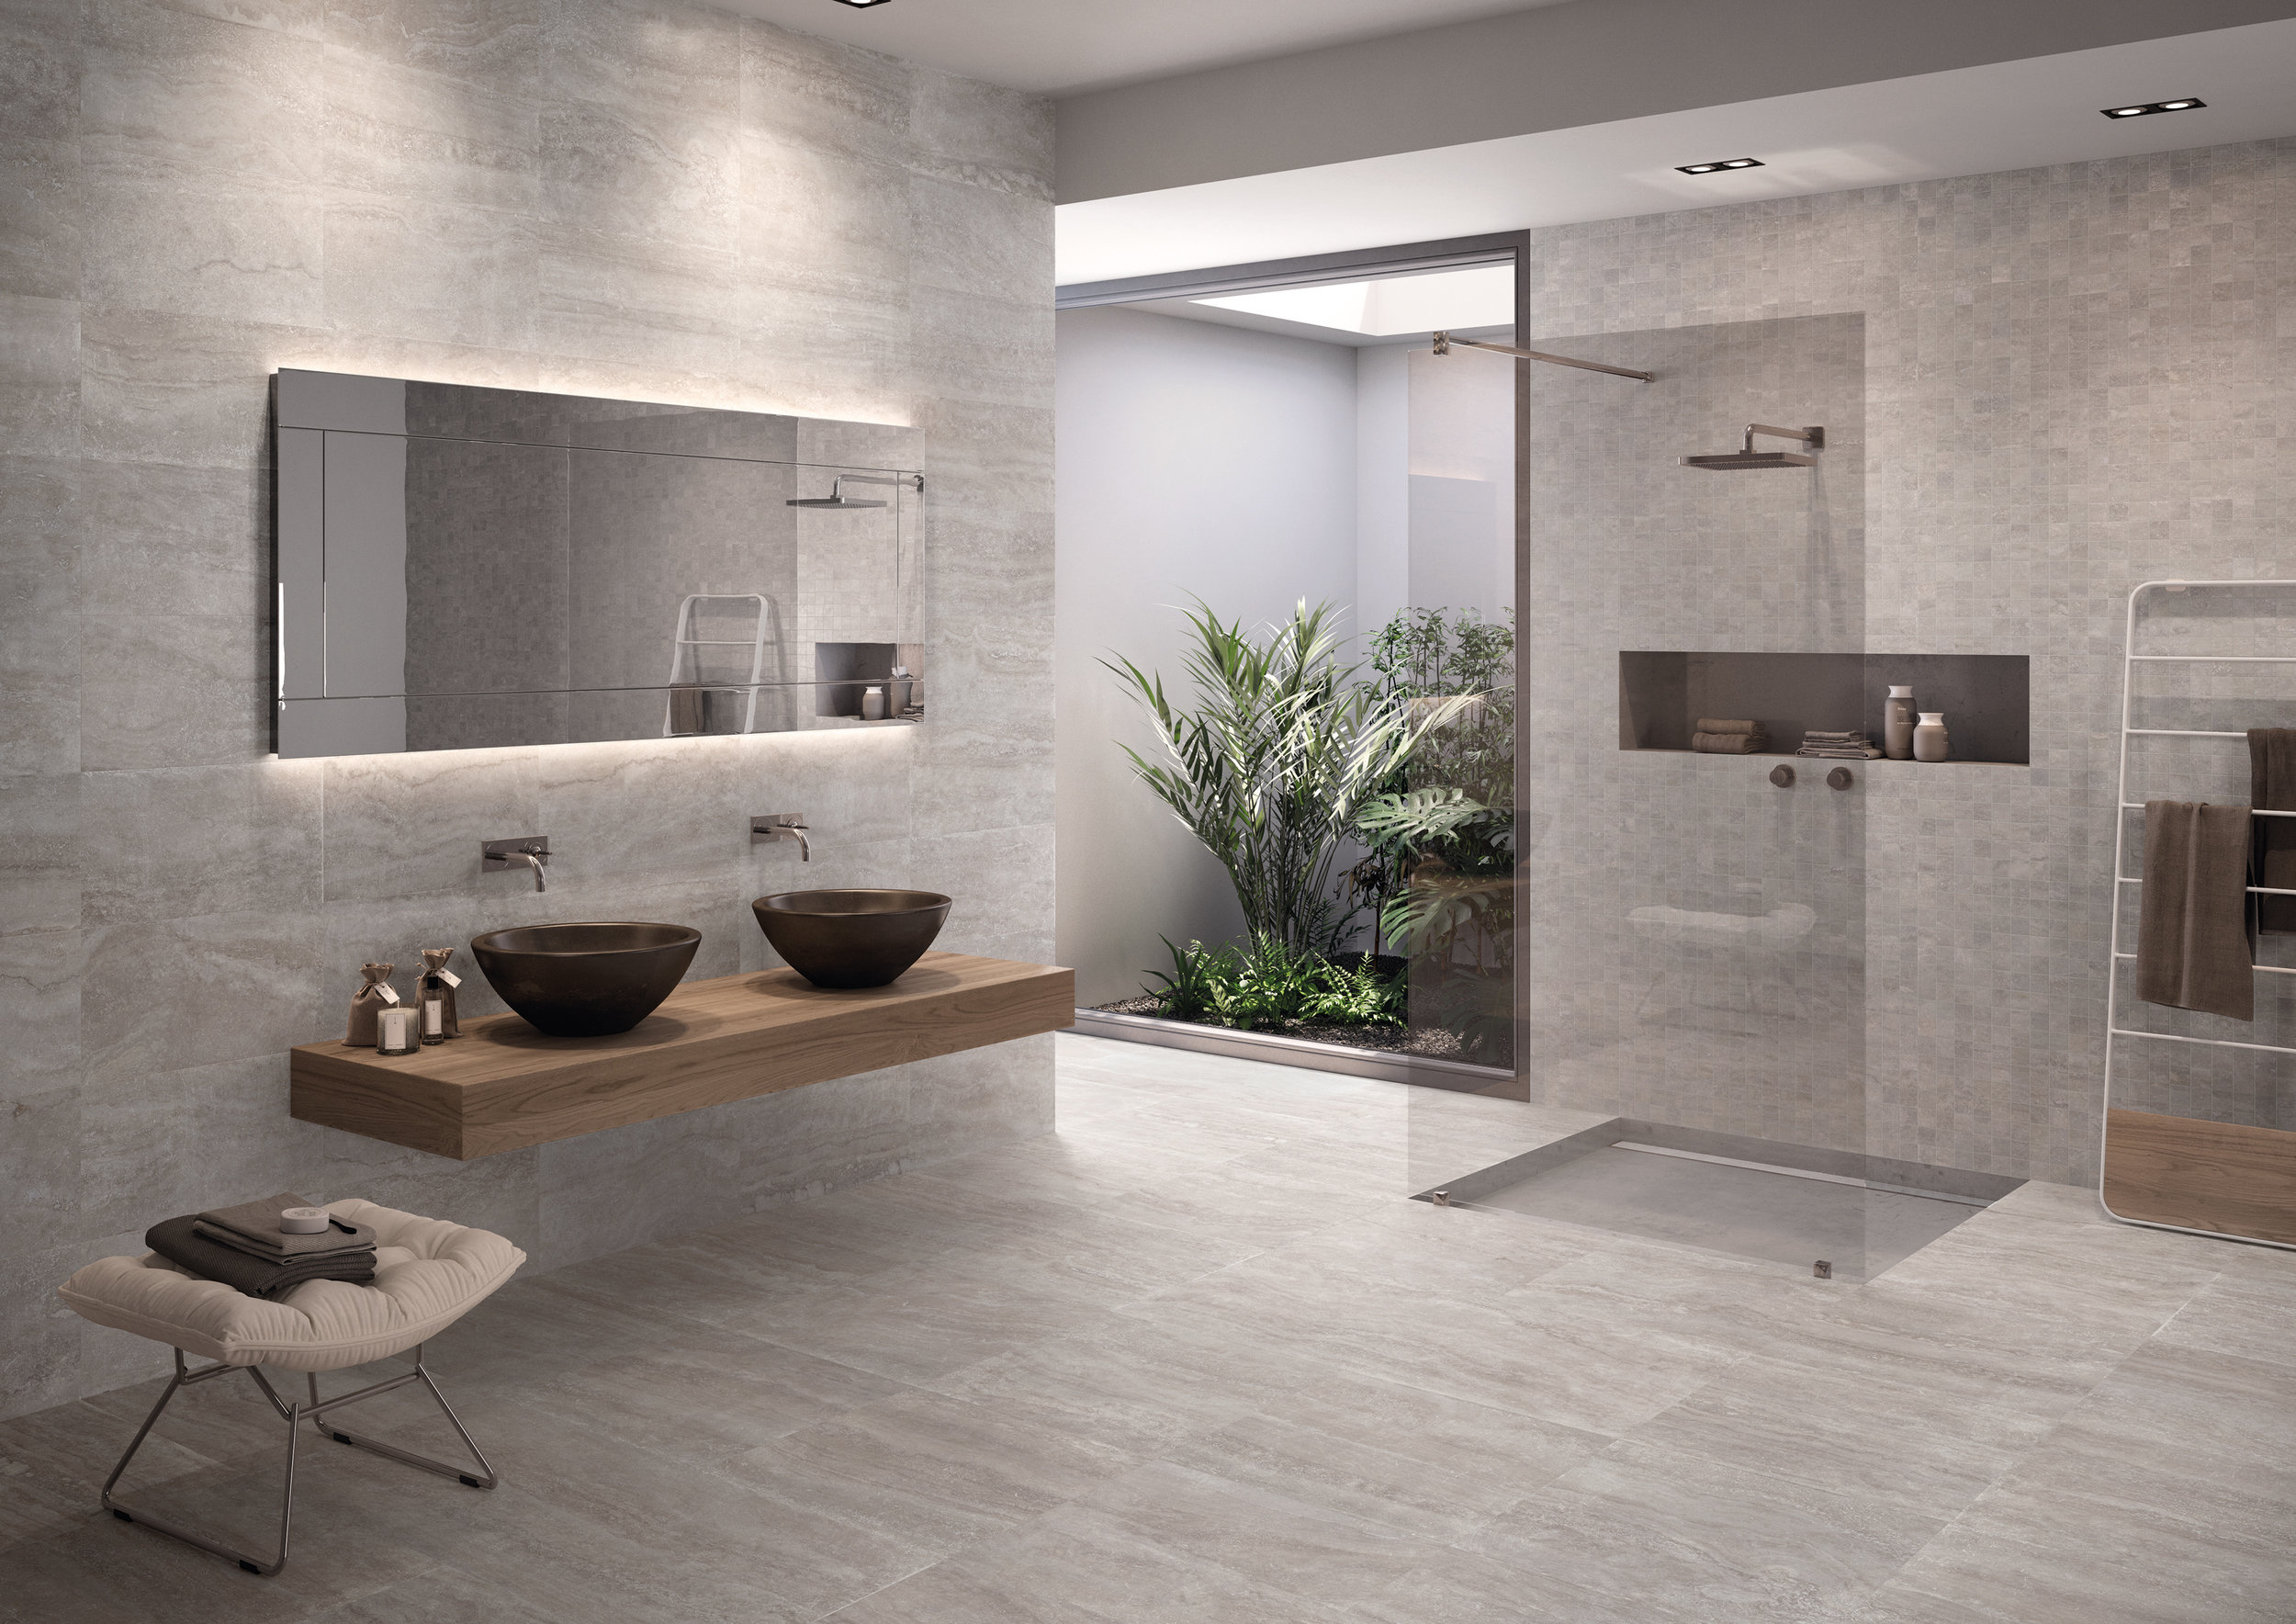 Bagno Tiles Eterna Tiles Of Distinction